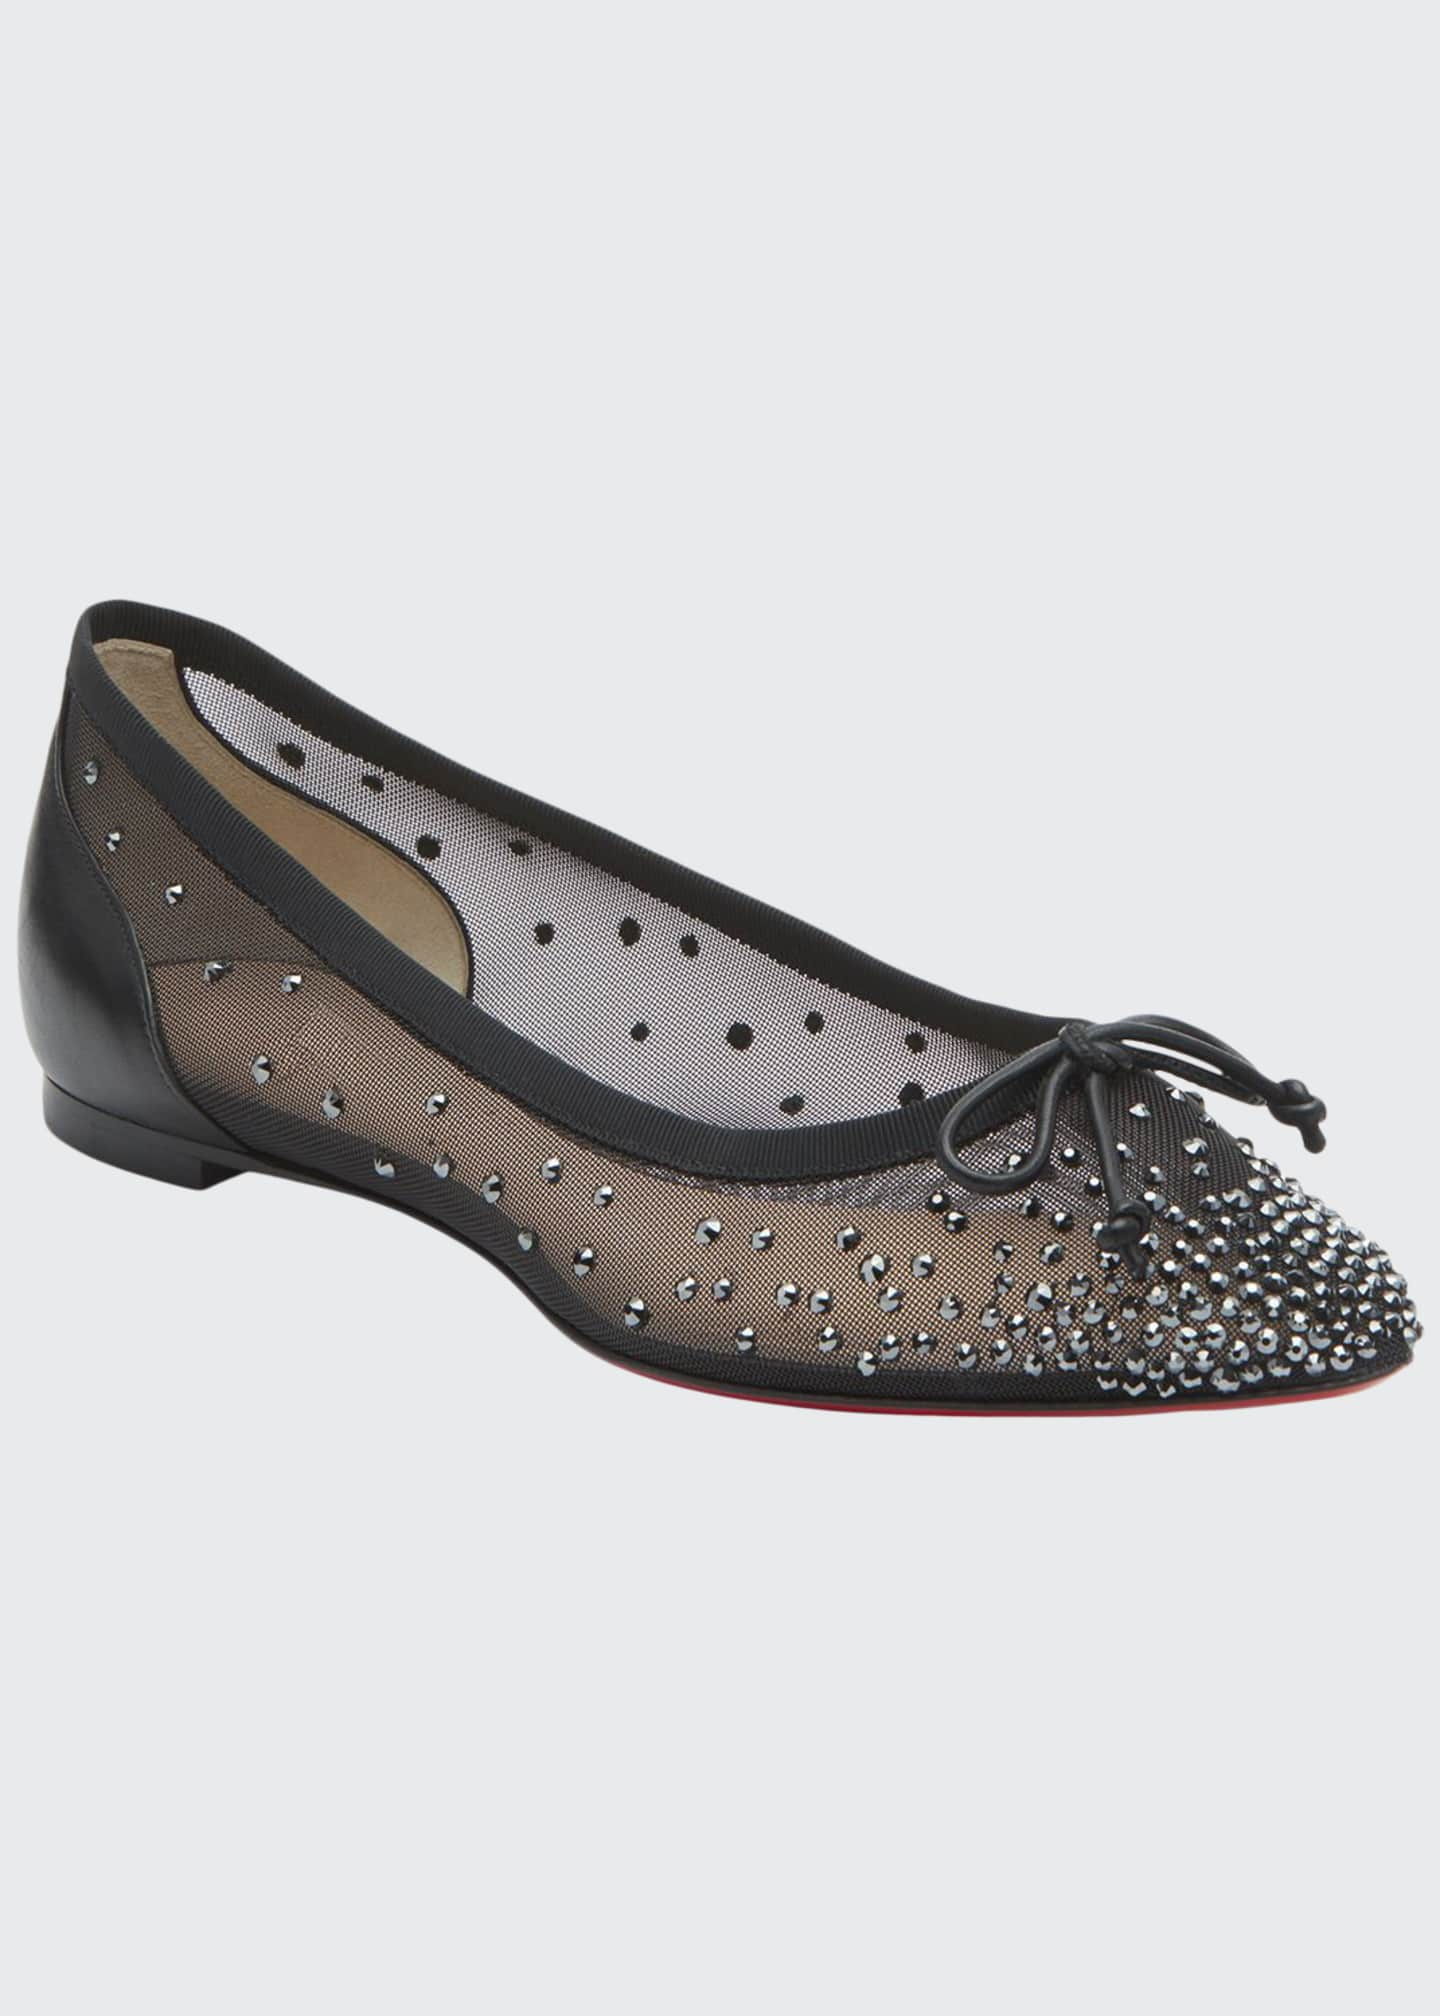 Christian Louboutin Patio Embellished Mesh Red Sole Flats